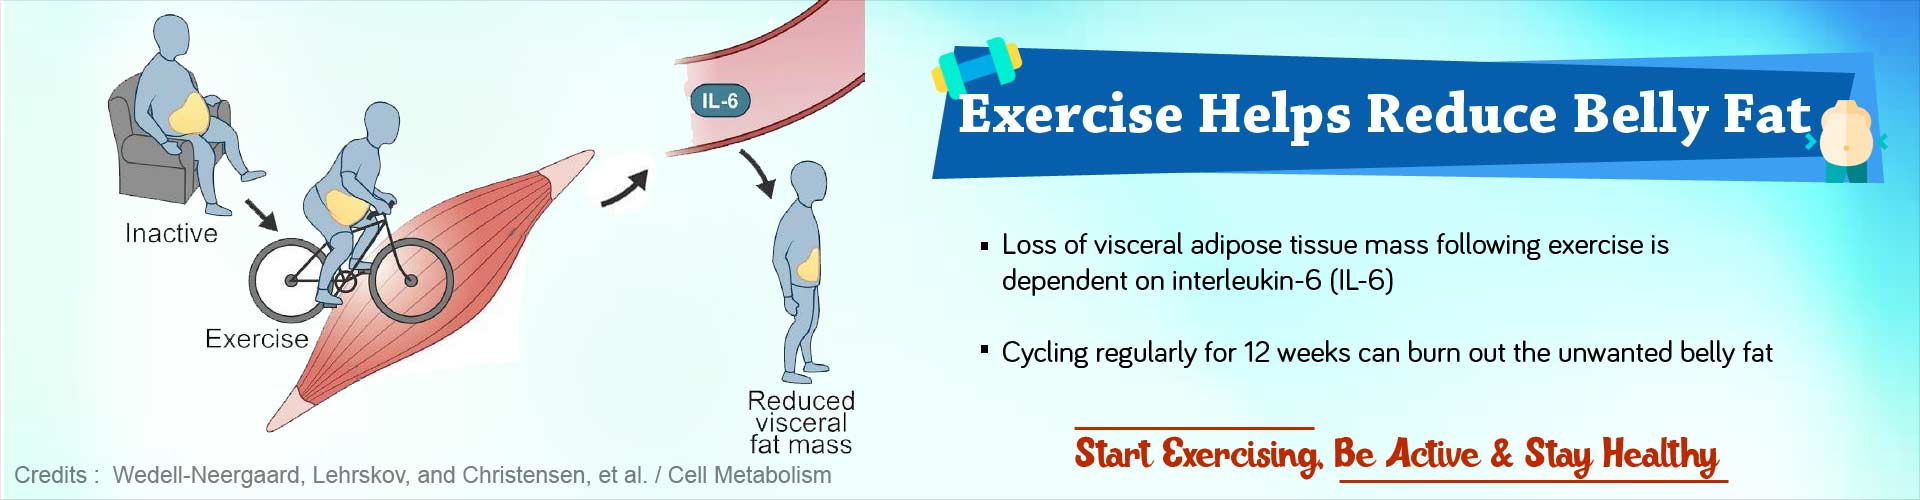 Exercise helps reduce belly fat. Loss of visceral adipose tissue mass following exercise is dependent on interleukin-6 (IL-6). Cycling regularly for 12 weeks can burn out the unwanted belly fat. Start exercising, be active and stay healthy.